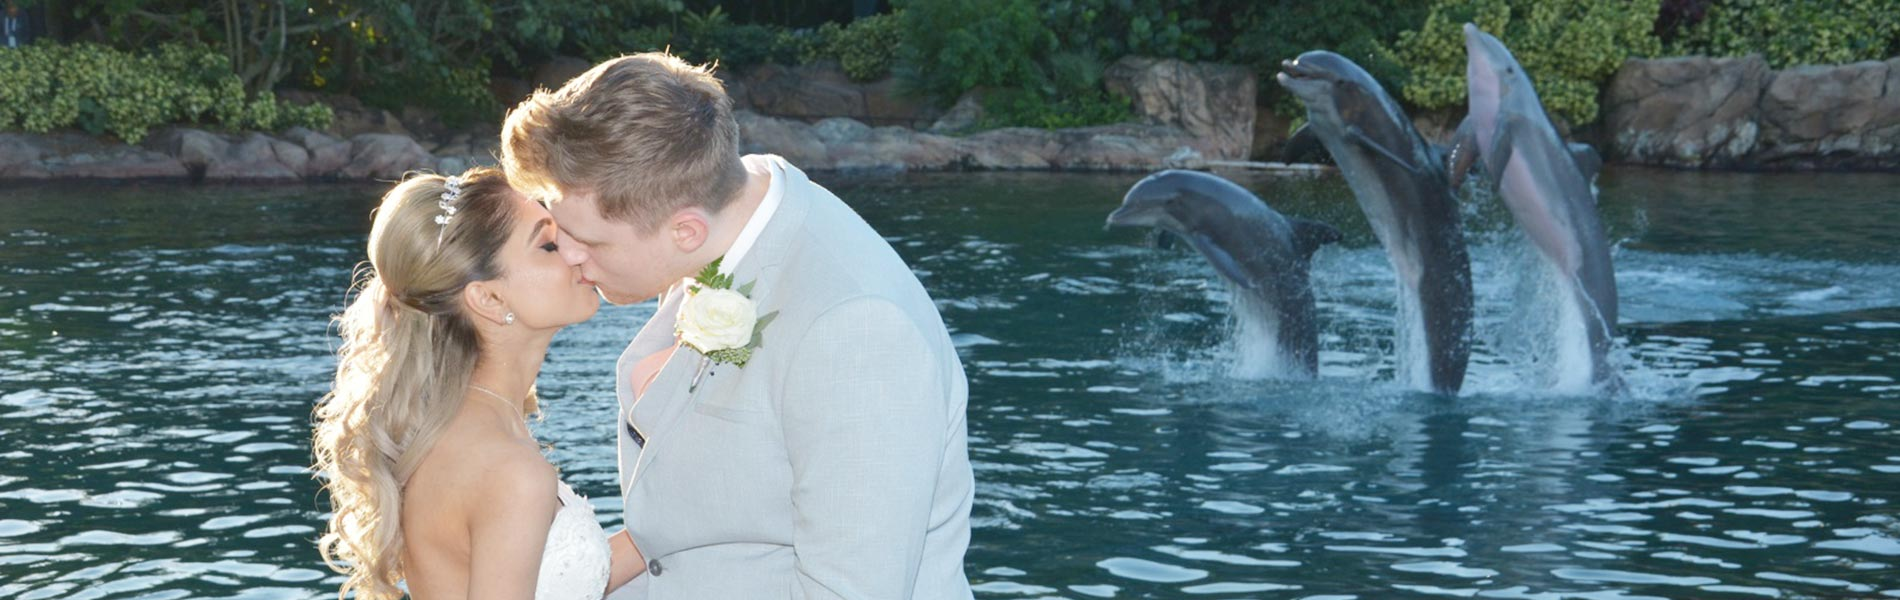 A wedding to remember at Discovery Cove Orlando